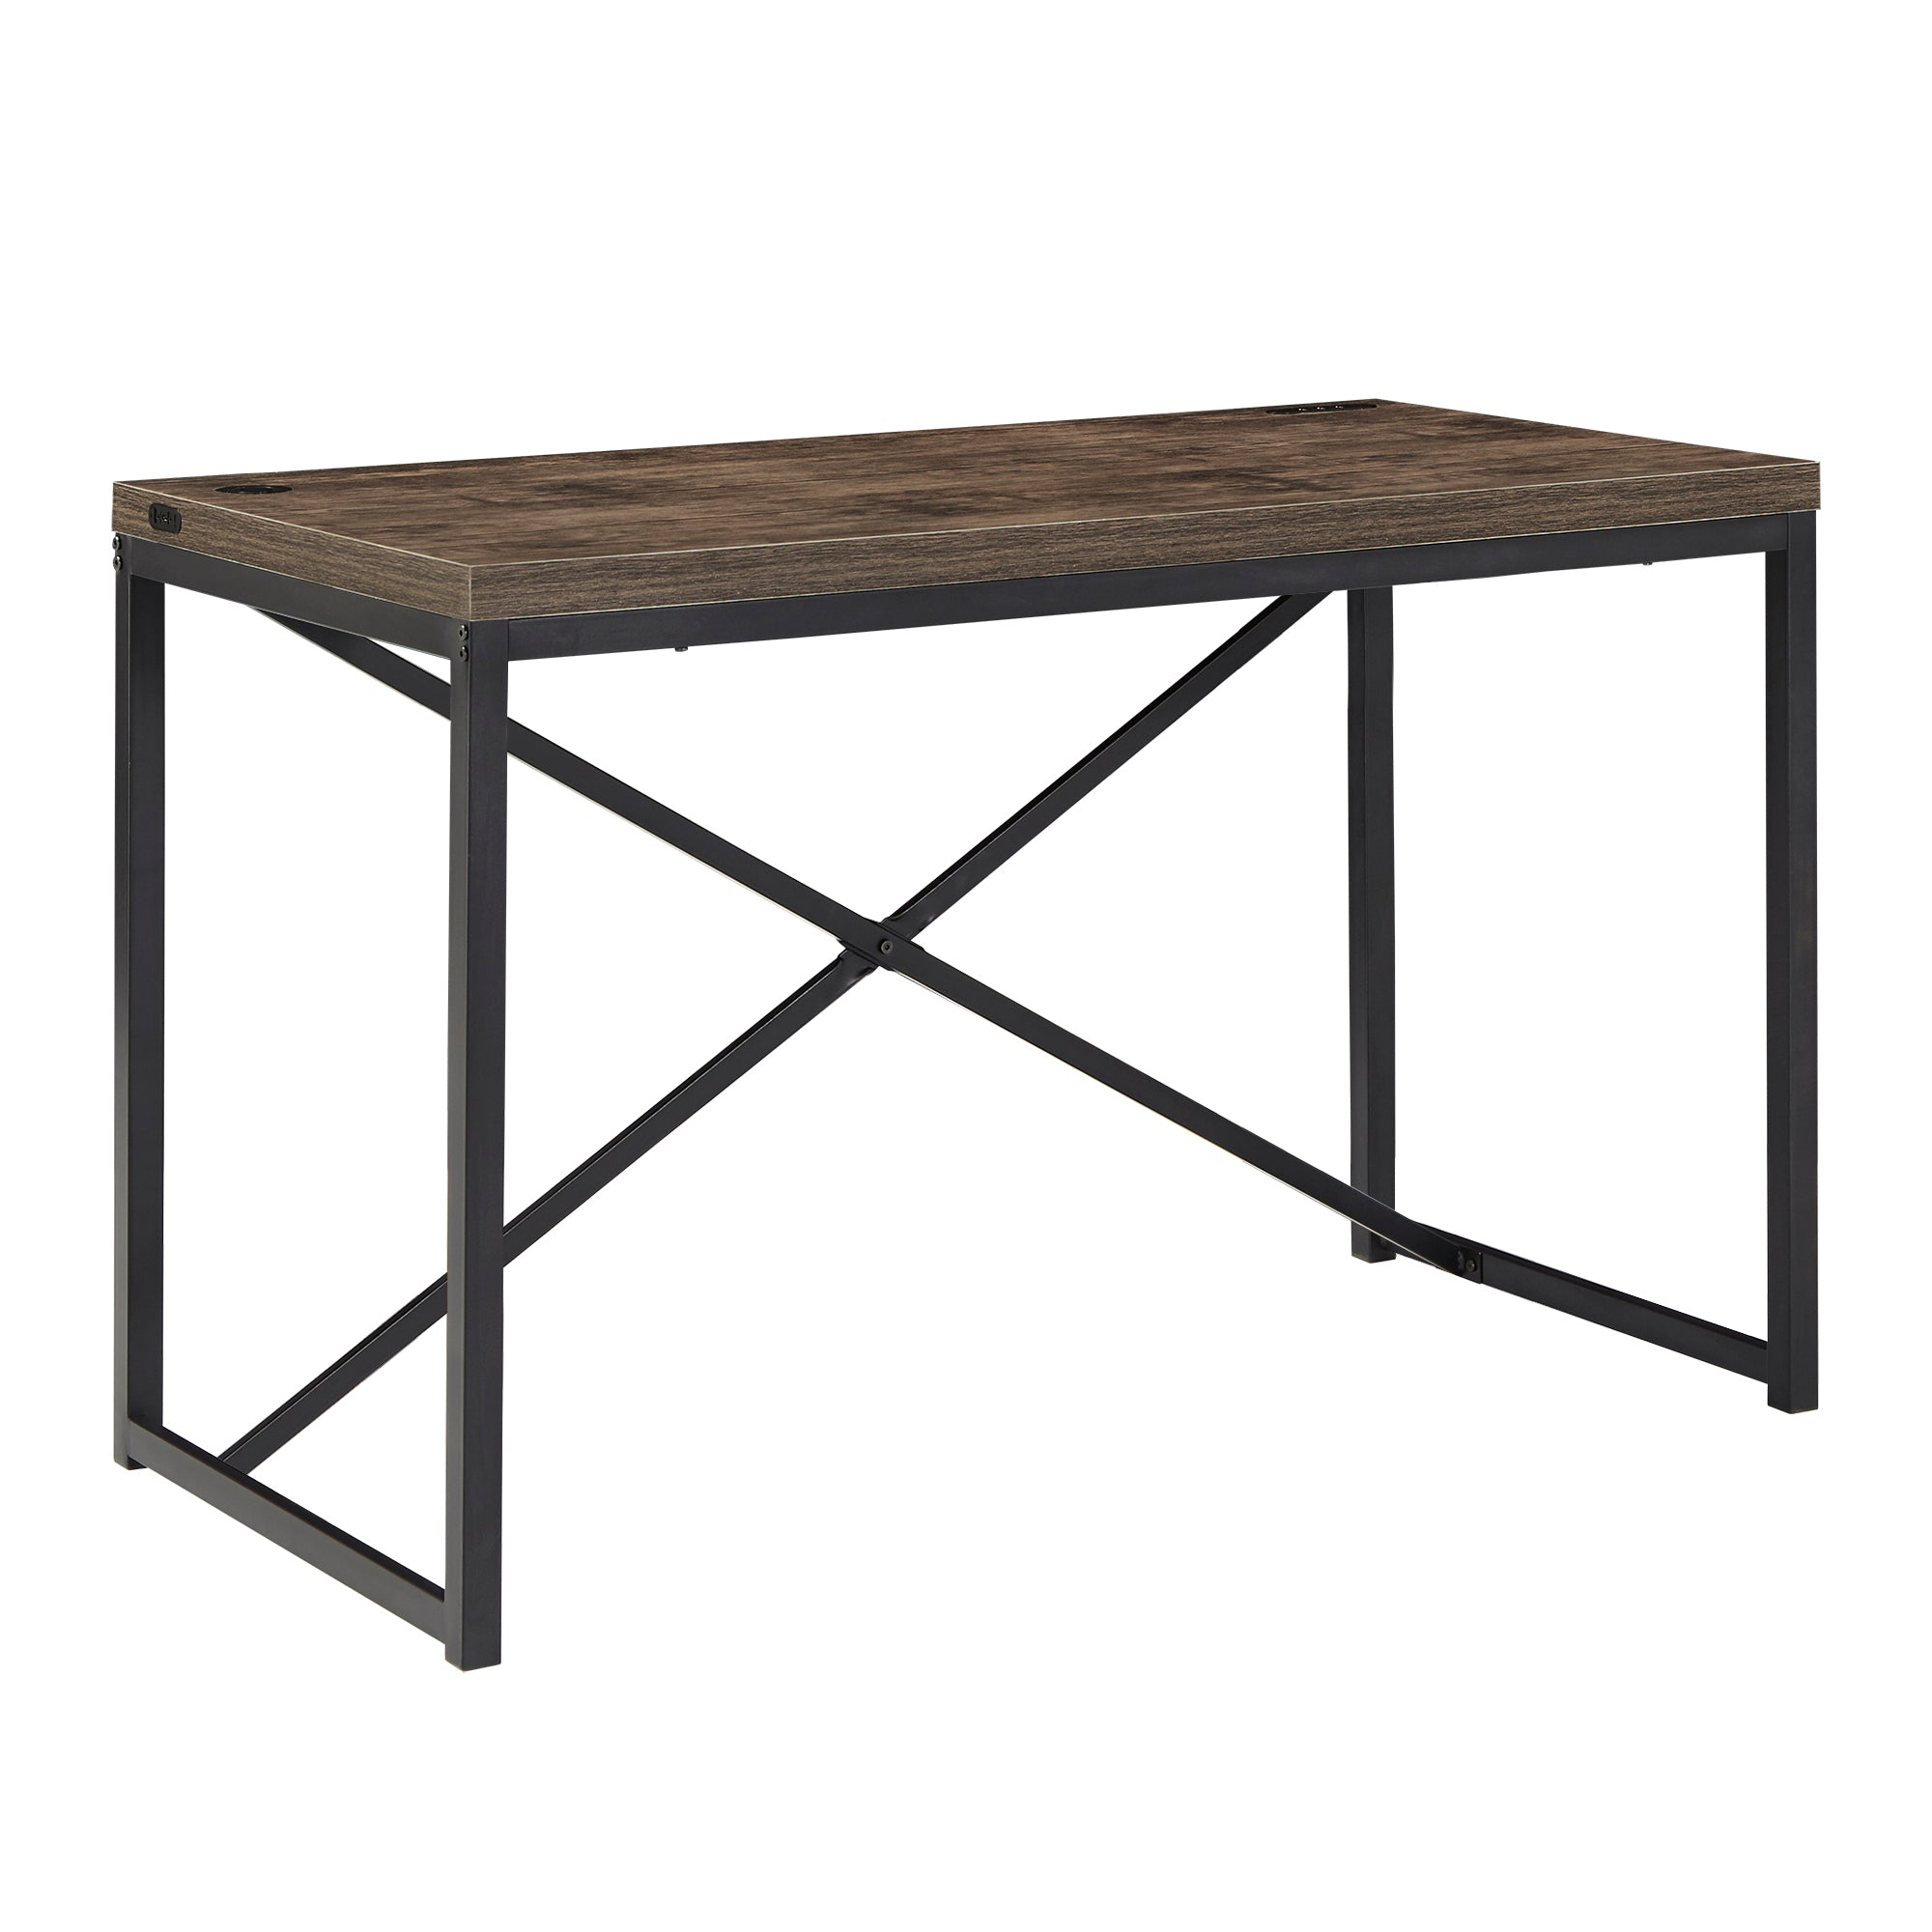 Black Metal Rustic Desk with USB Charging Station